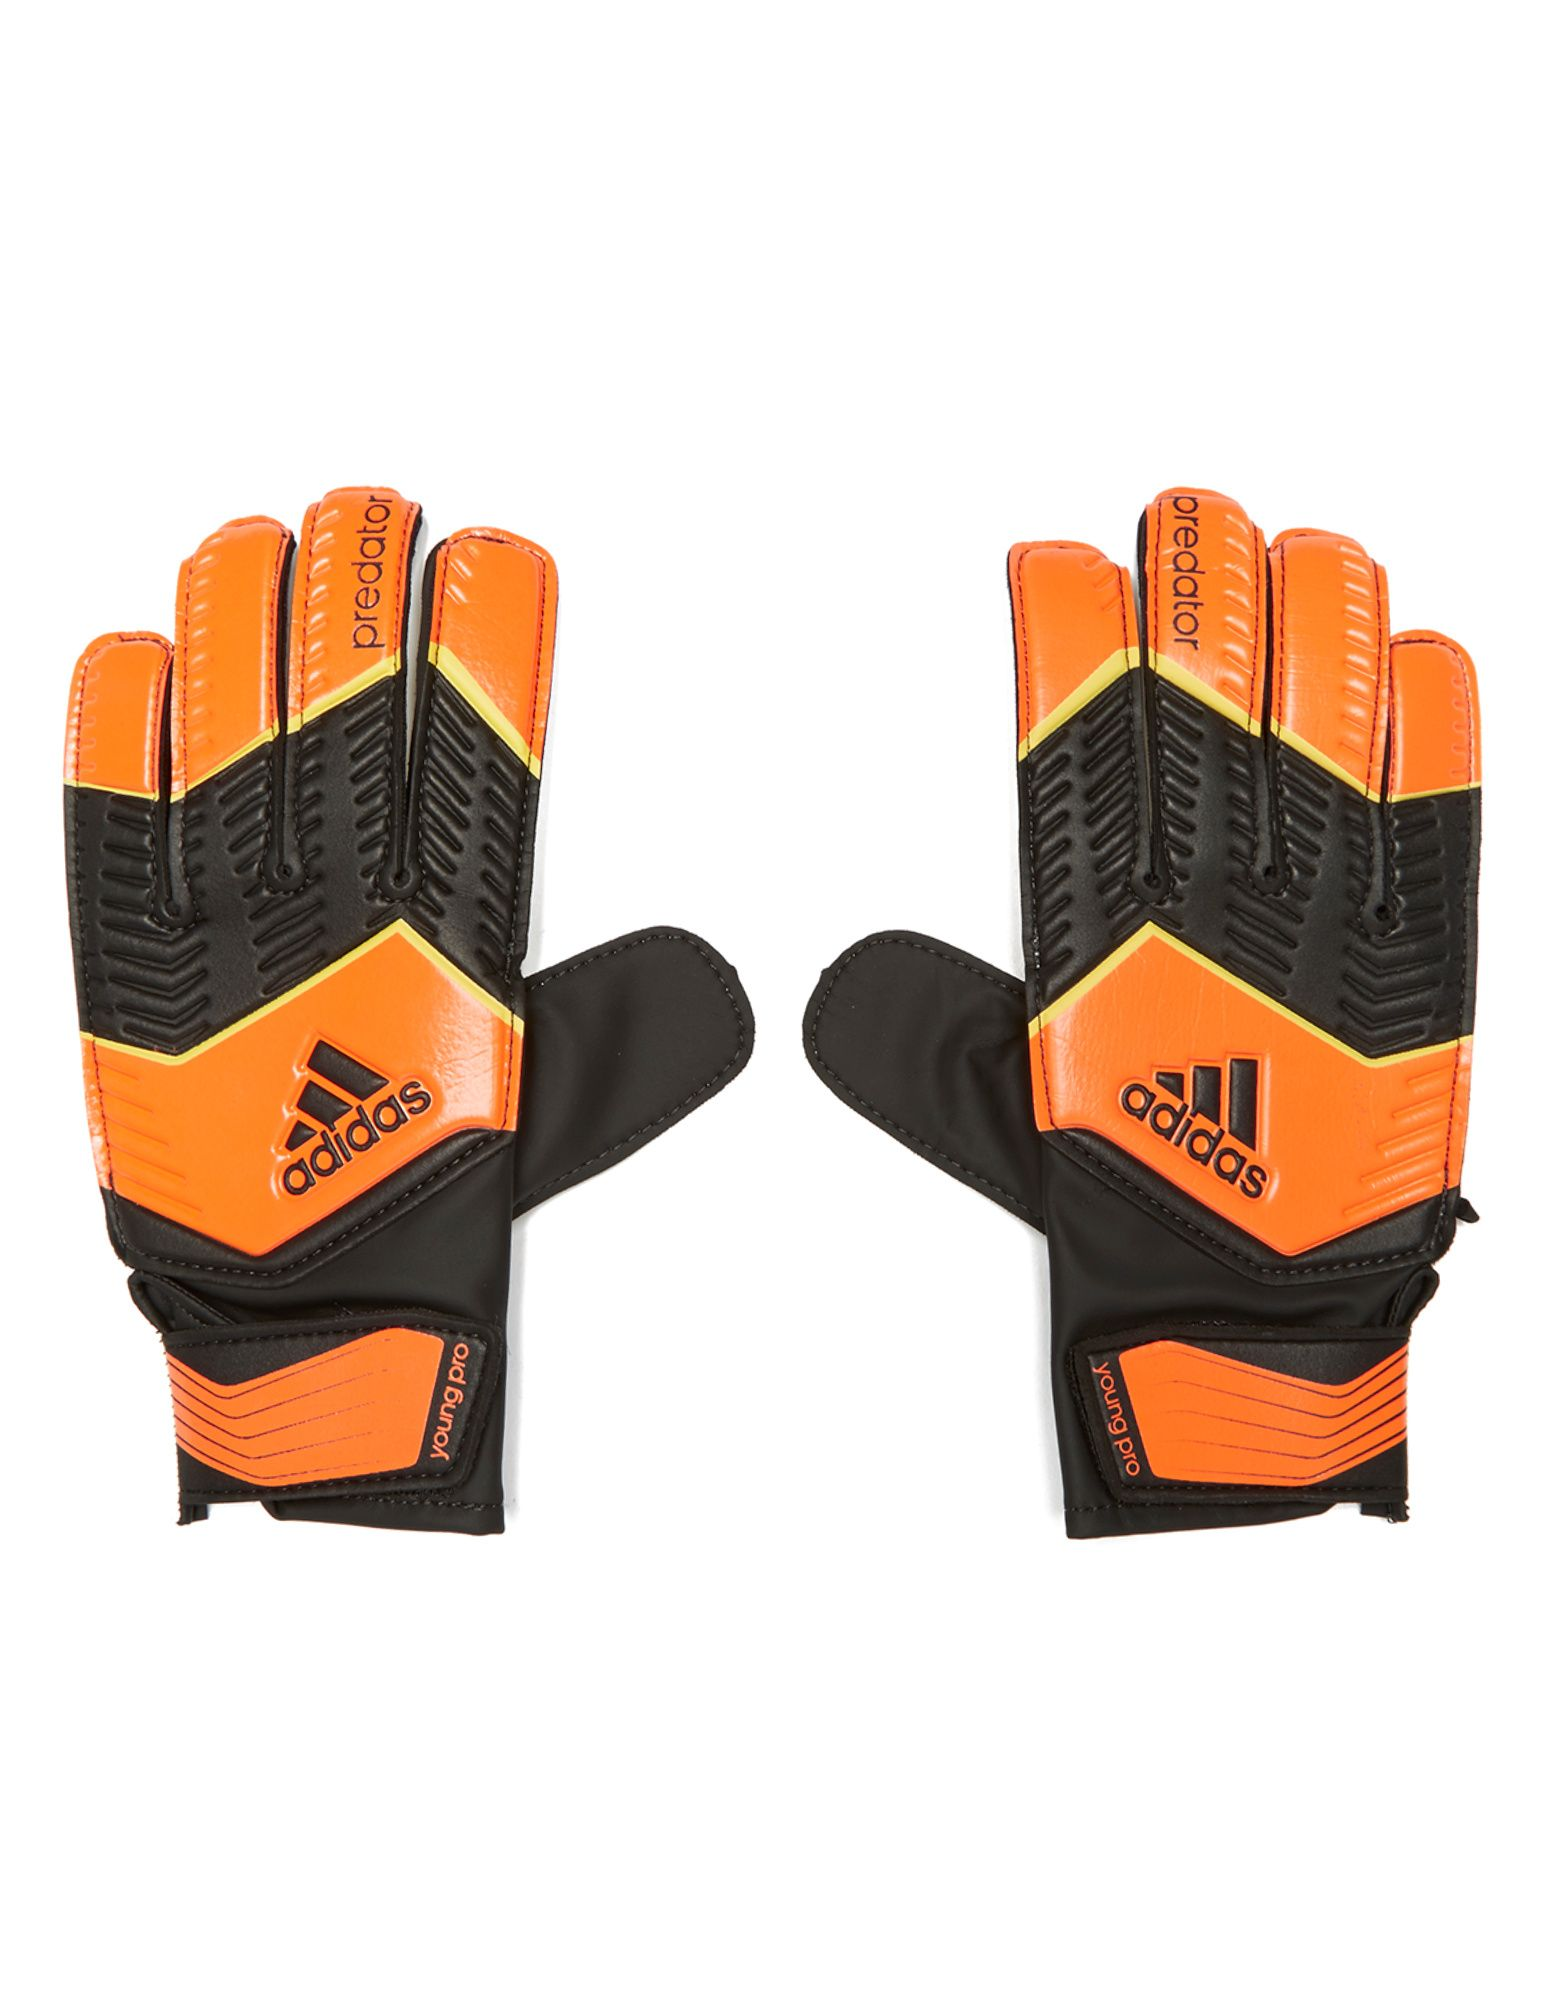 adidas Predator Young Pro Goal Keeper Gloves